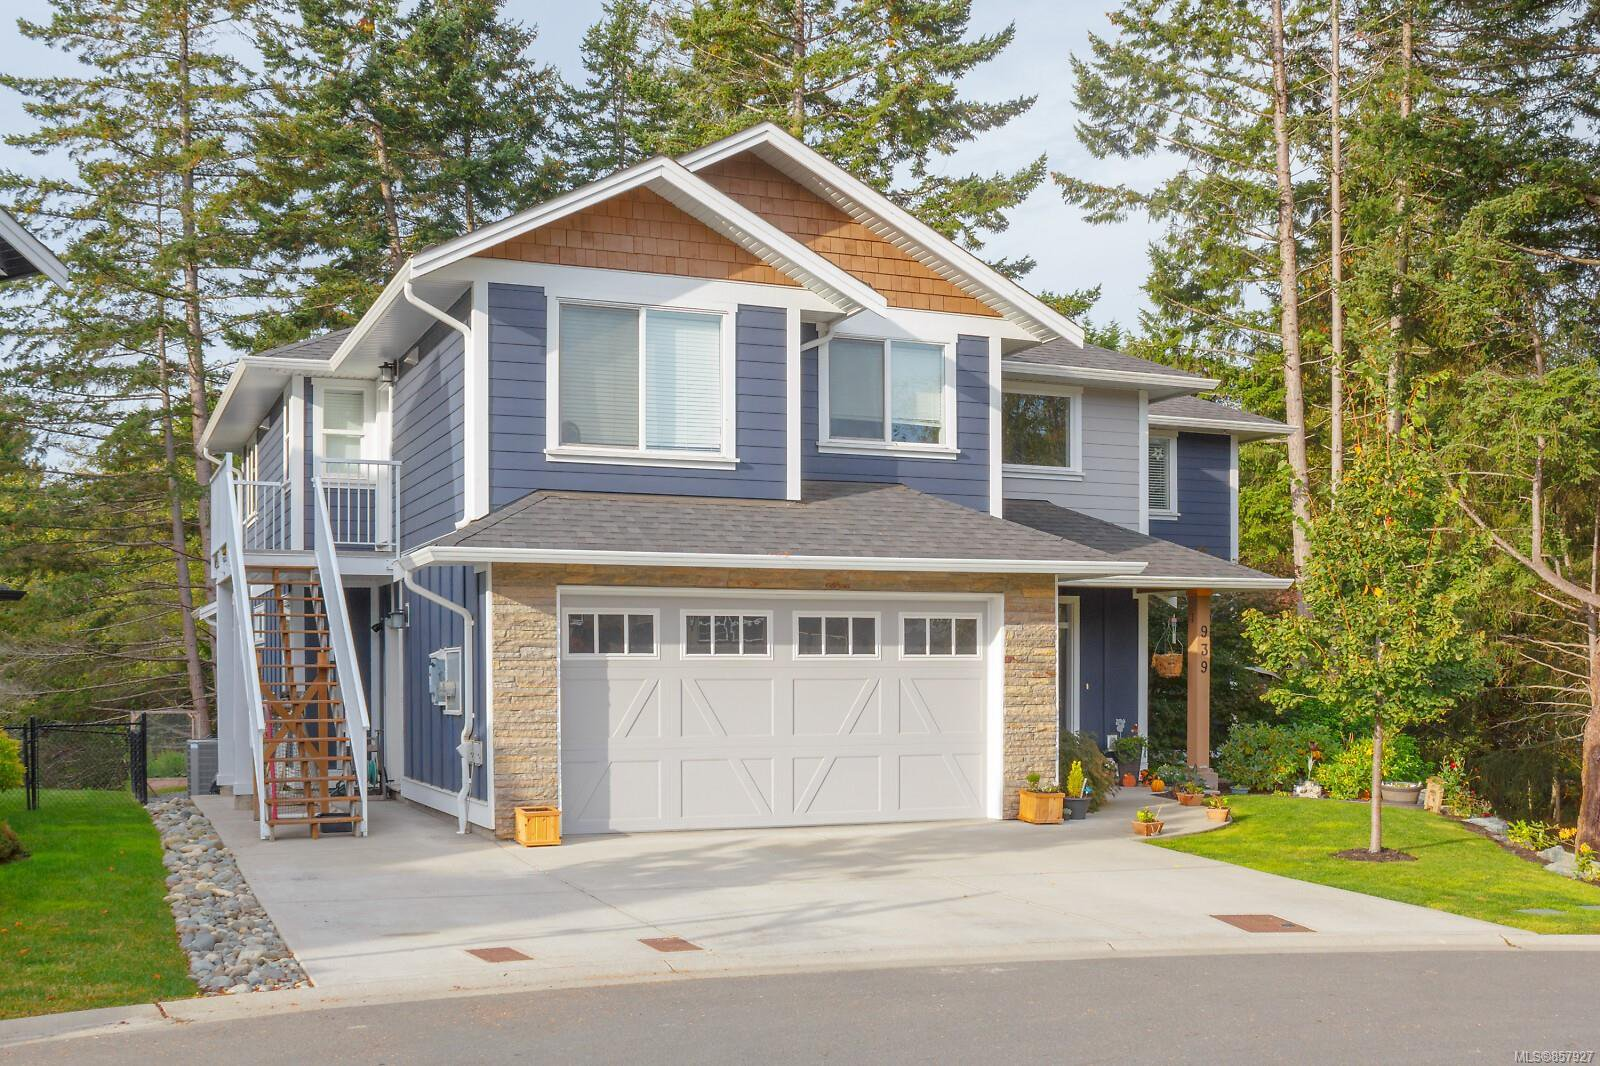 Main Photo: 939 Ancona Ave in : La Olympic View House for sale (Langford)  : MLS®# 857927